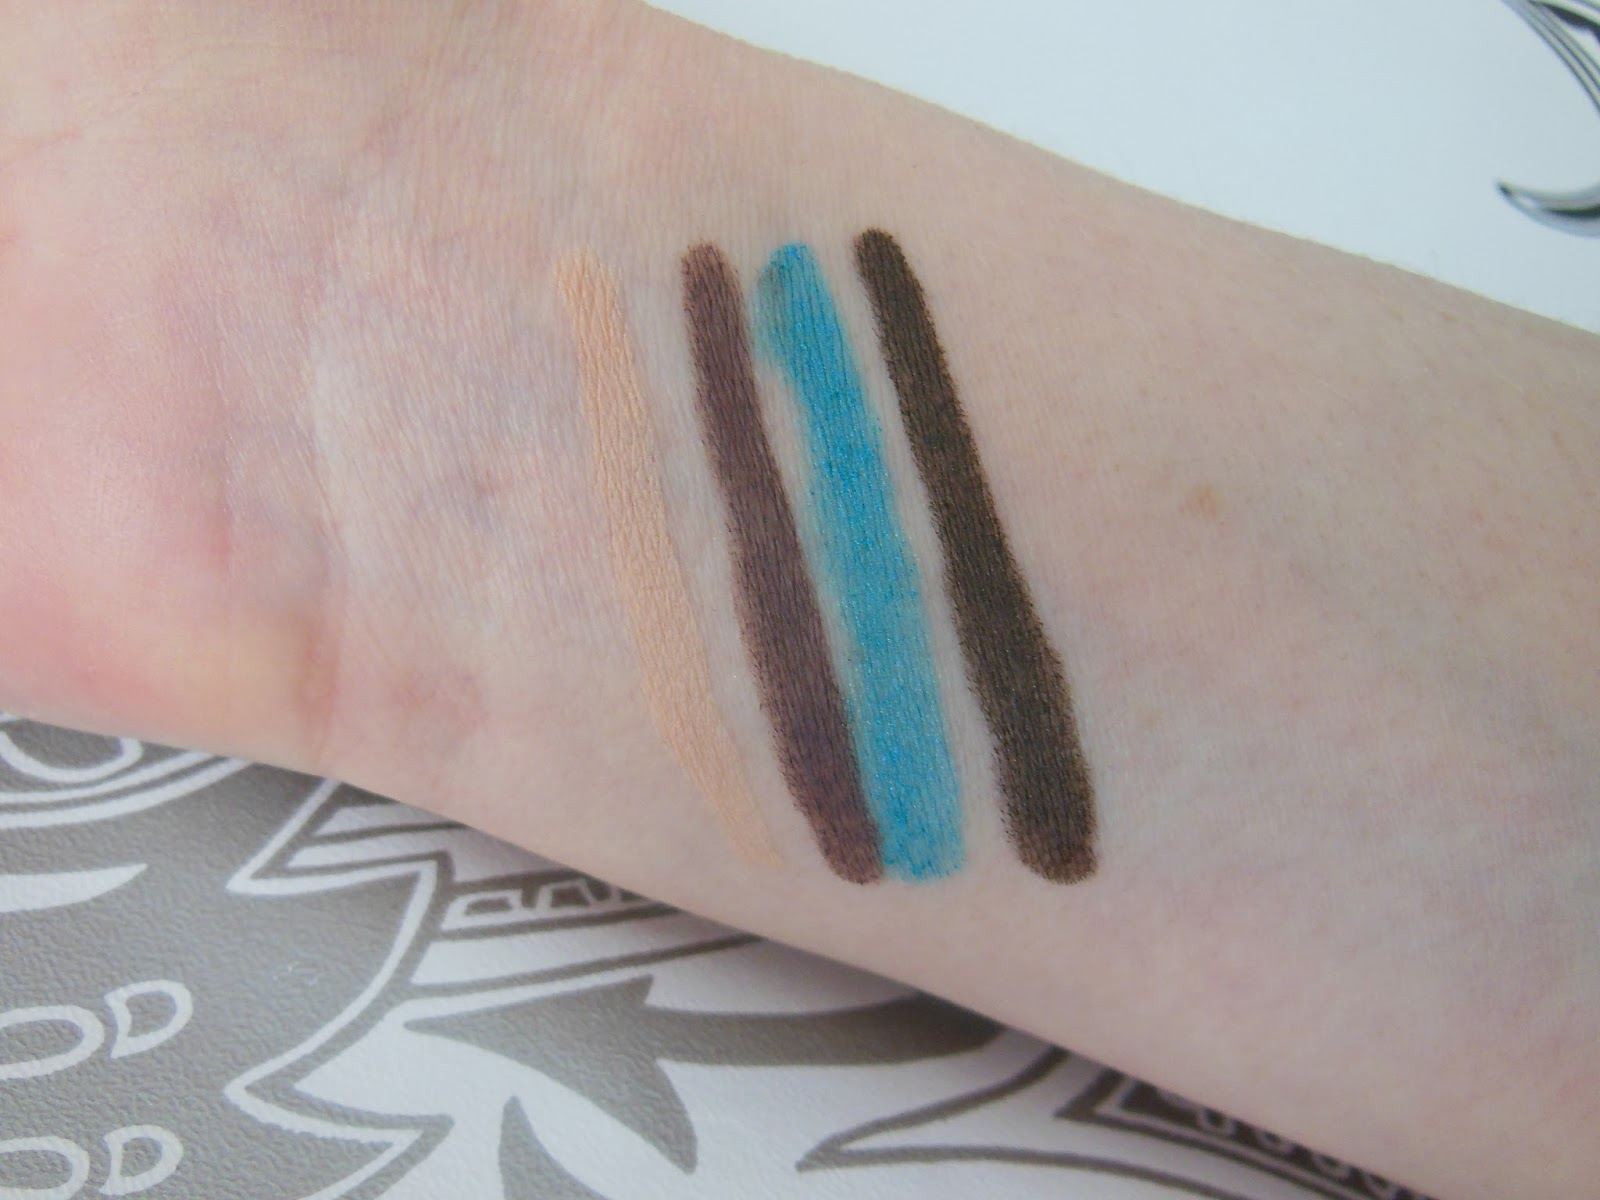 Kiko life in rio collection creamy touch eyeshadow duo pencil swatches